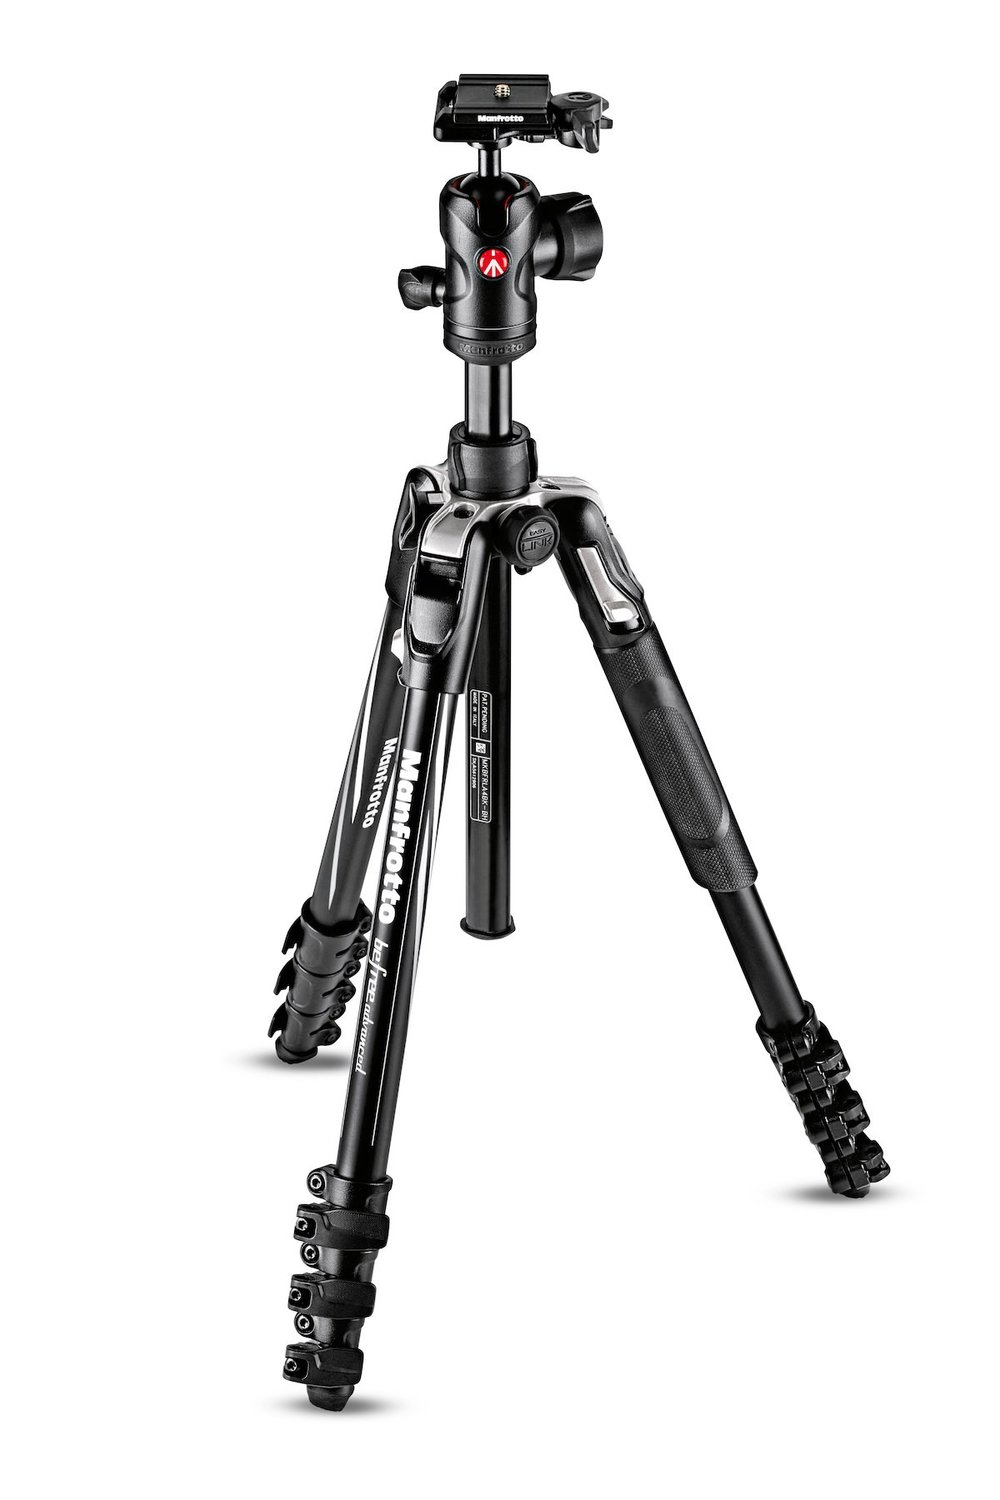 Manfrotto Befree Advanced Travel Al Tripod with Ball Head     (click for link)